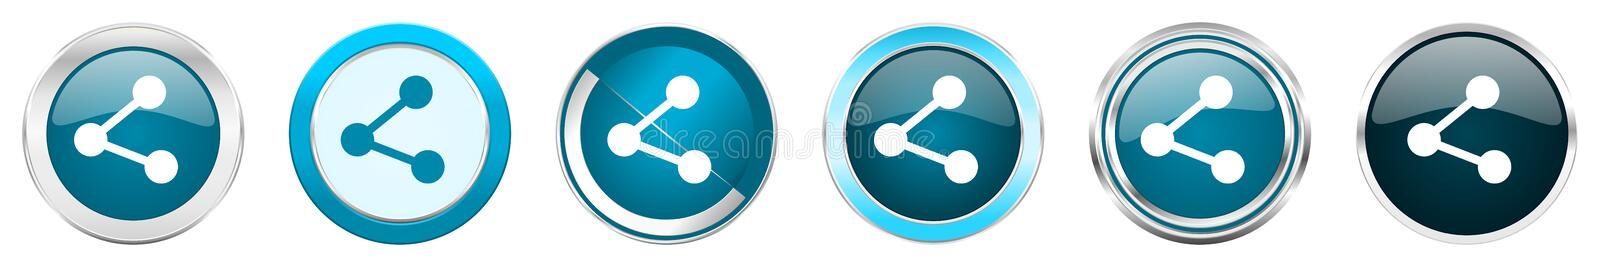 Share silver metallic chrome border icons in 6 options, set of web blue round buttons isolated on white background.  stock illustration